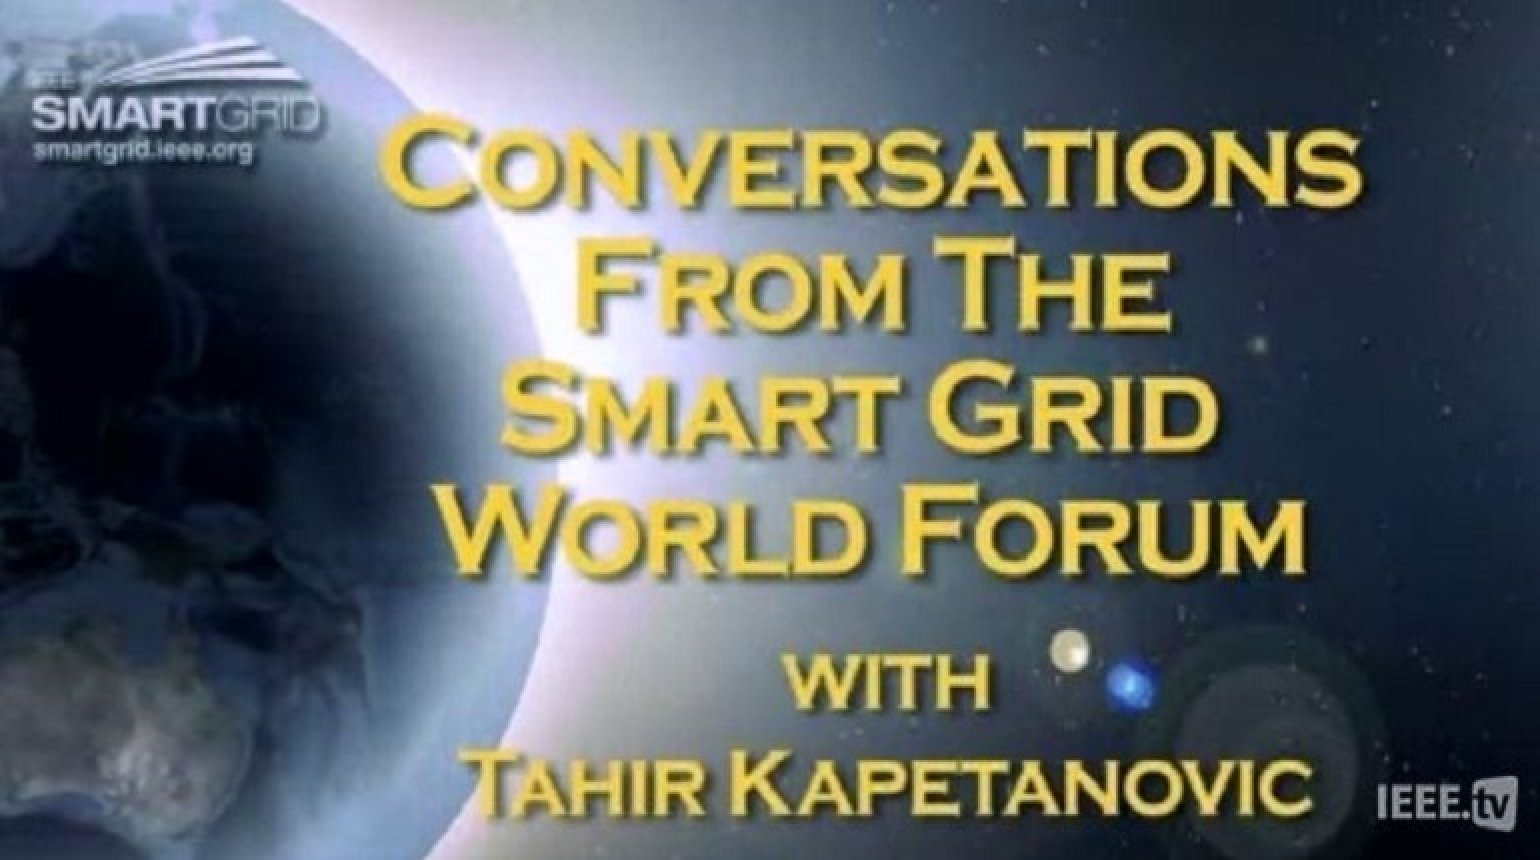 Smart Grid as a Service Provider: Tahir Kapentanovic